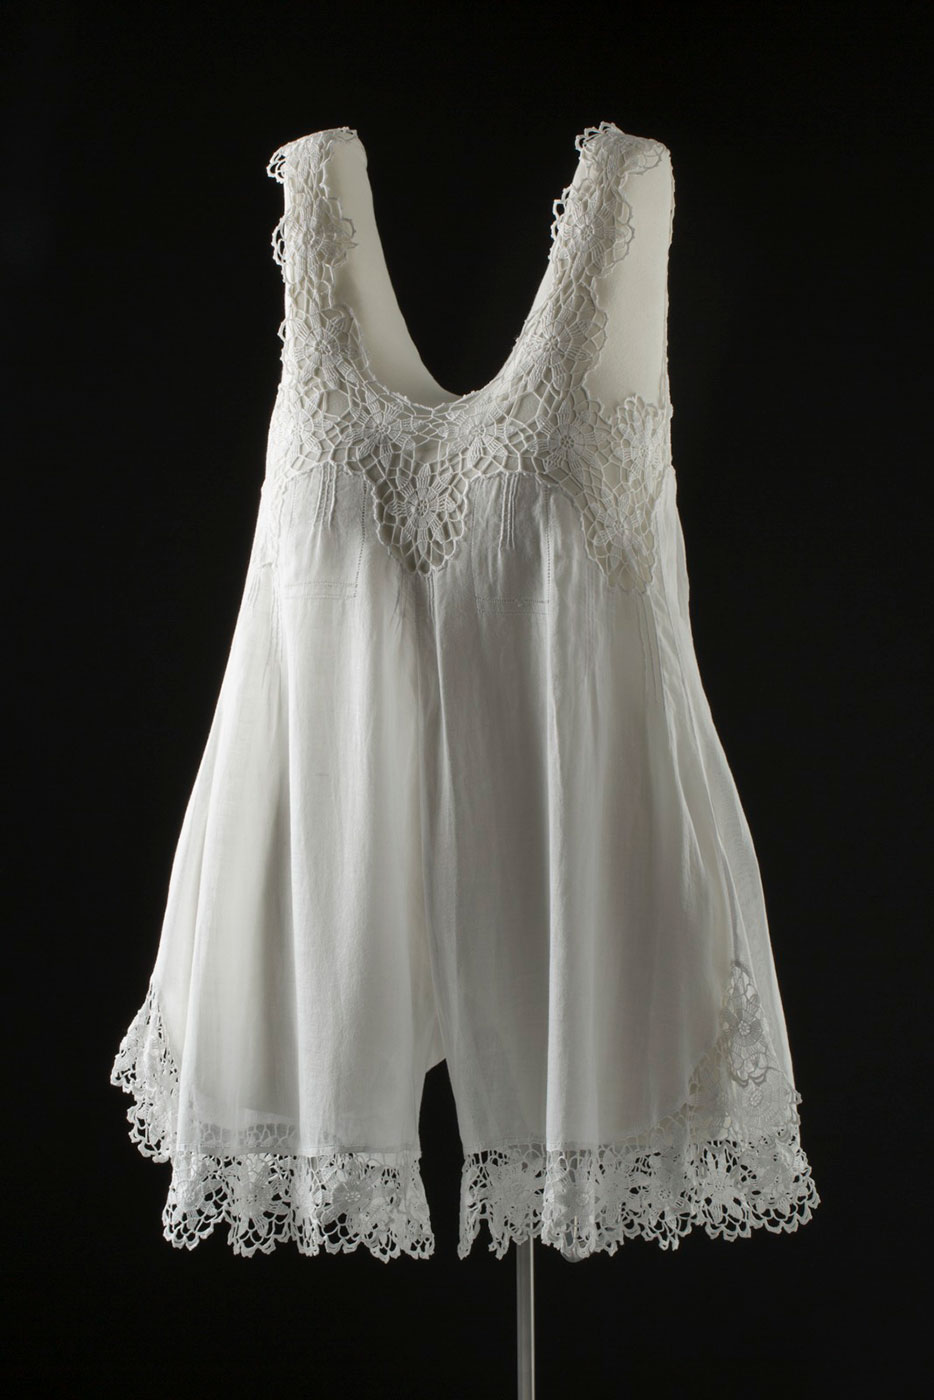 White singlet-style camisole with decorative elements around neckline and legs - click to view larger image